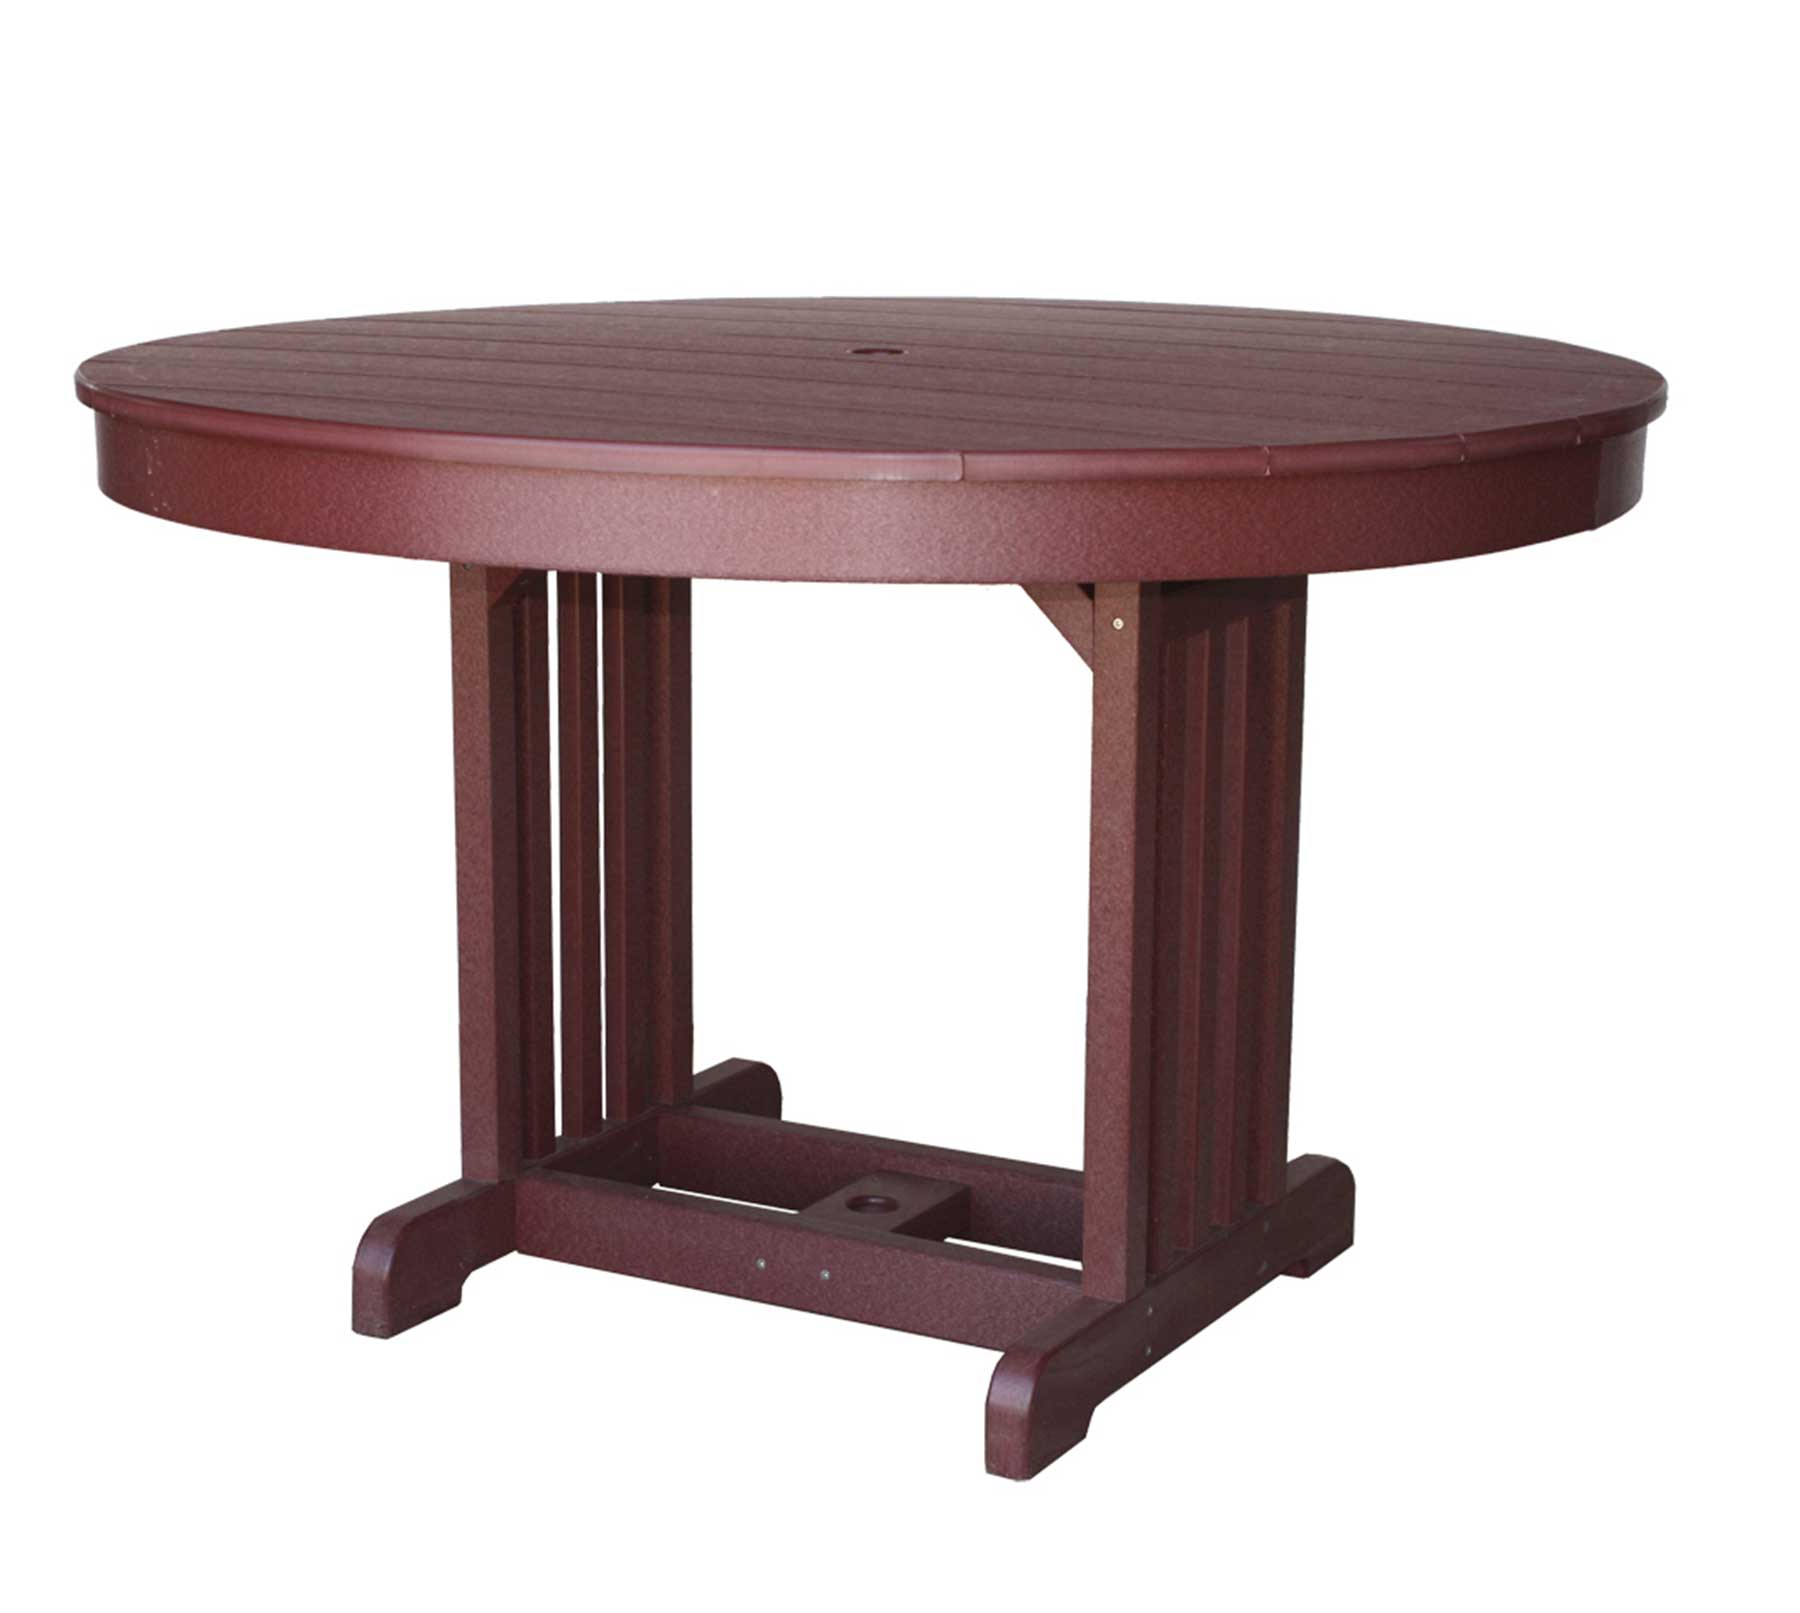 The Round Mission Table From Signature Fine Furnishings